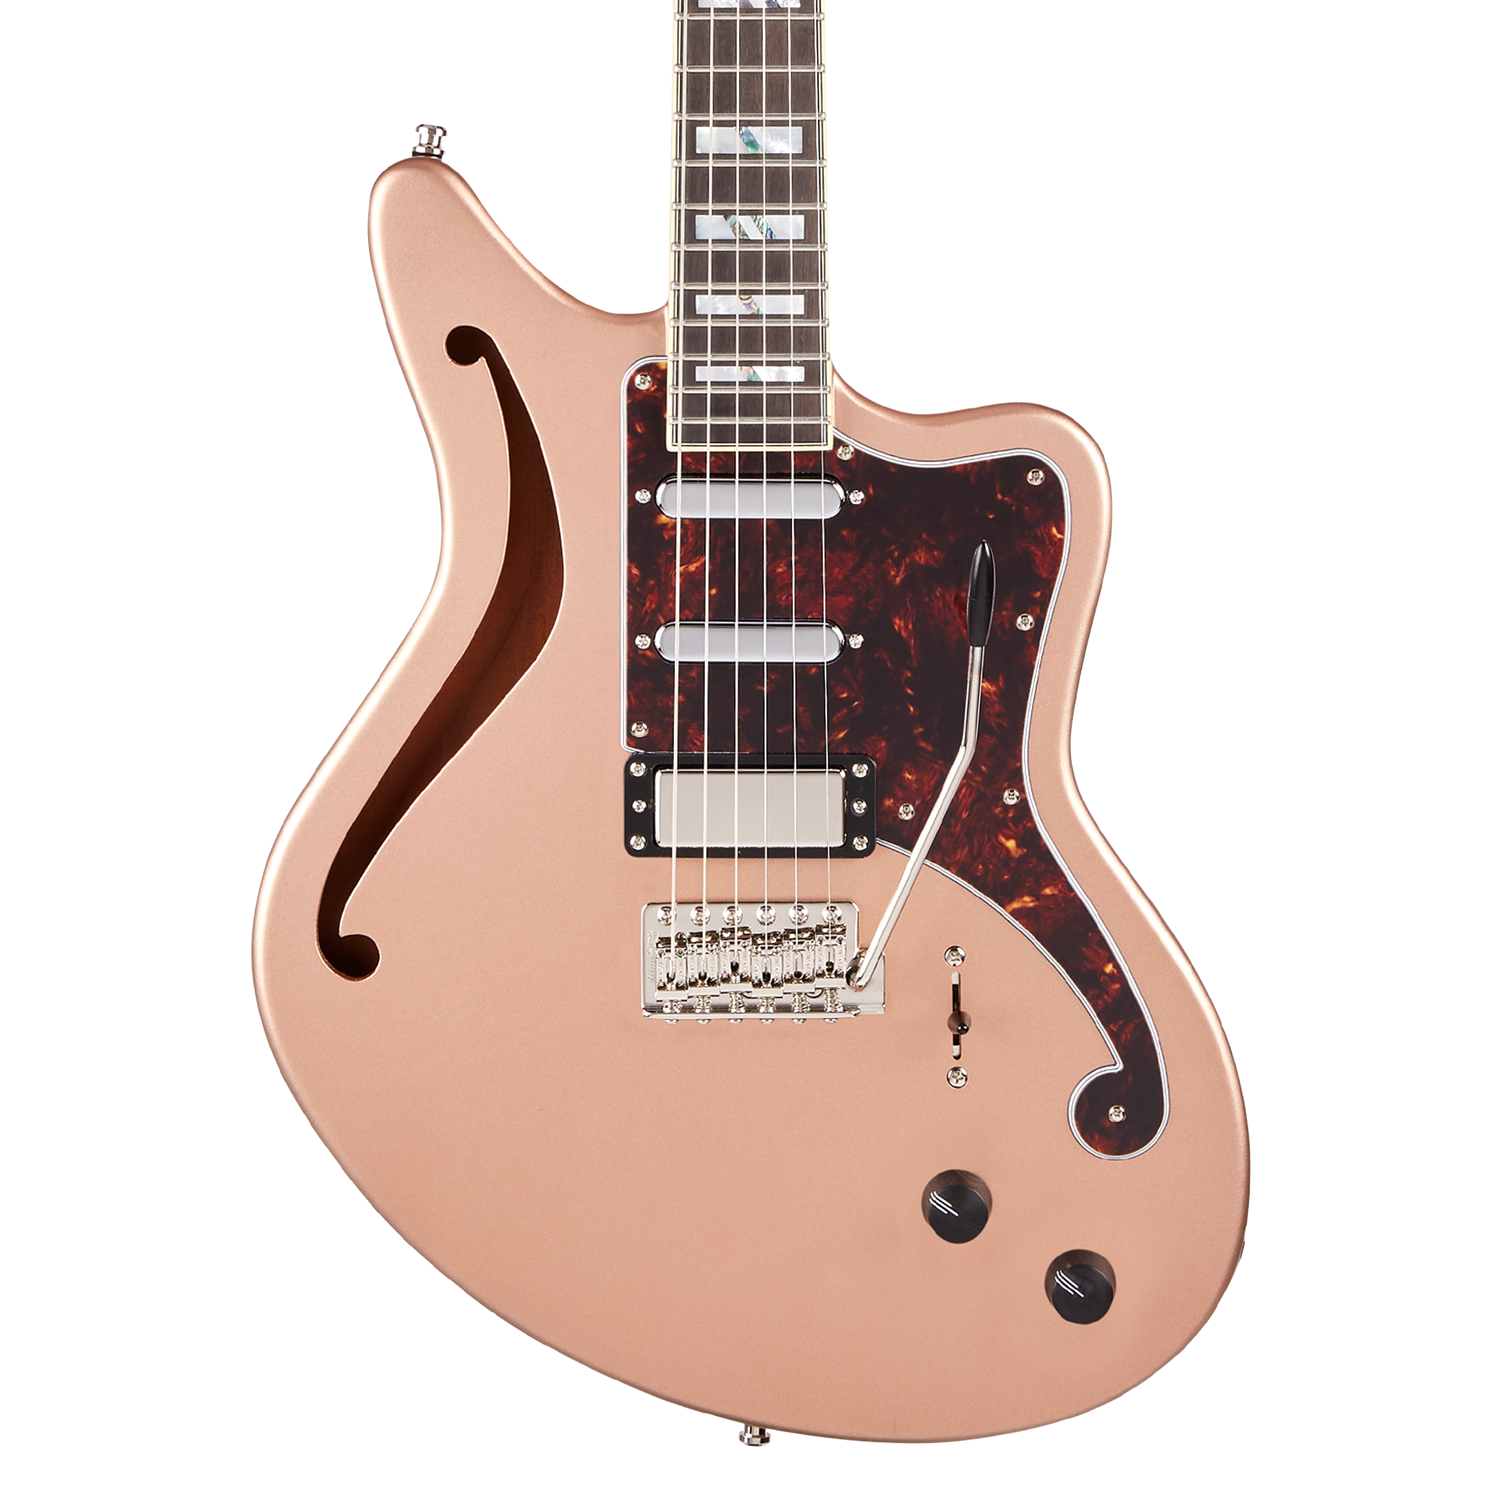 D'Angelico Deluxe Bedford SH Limited Edition - Matte Rose Gold